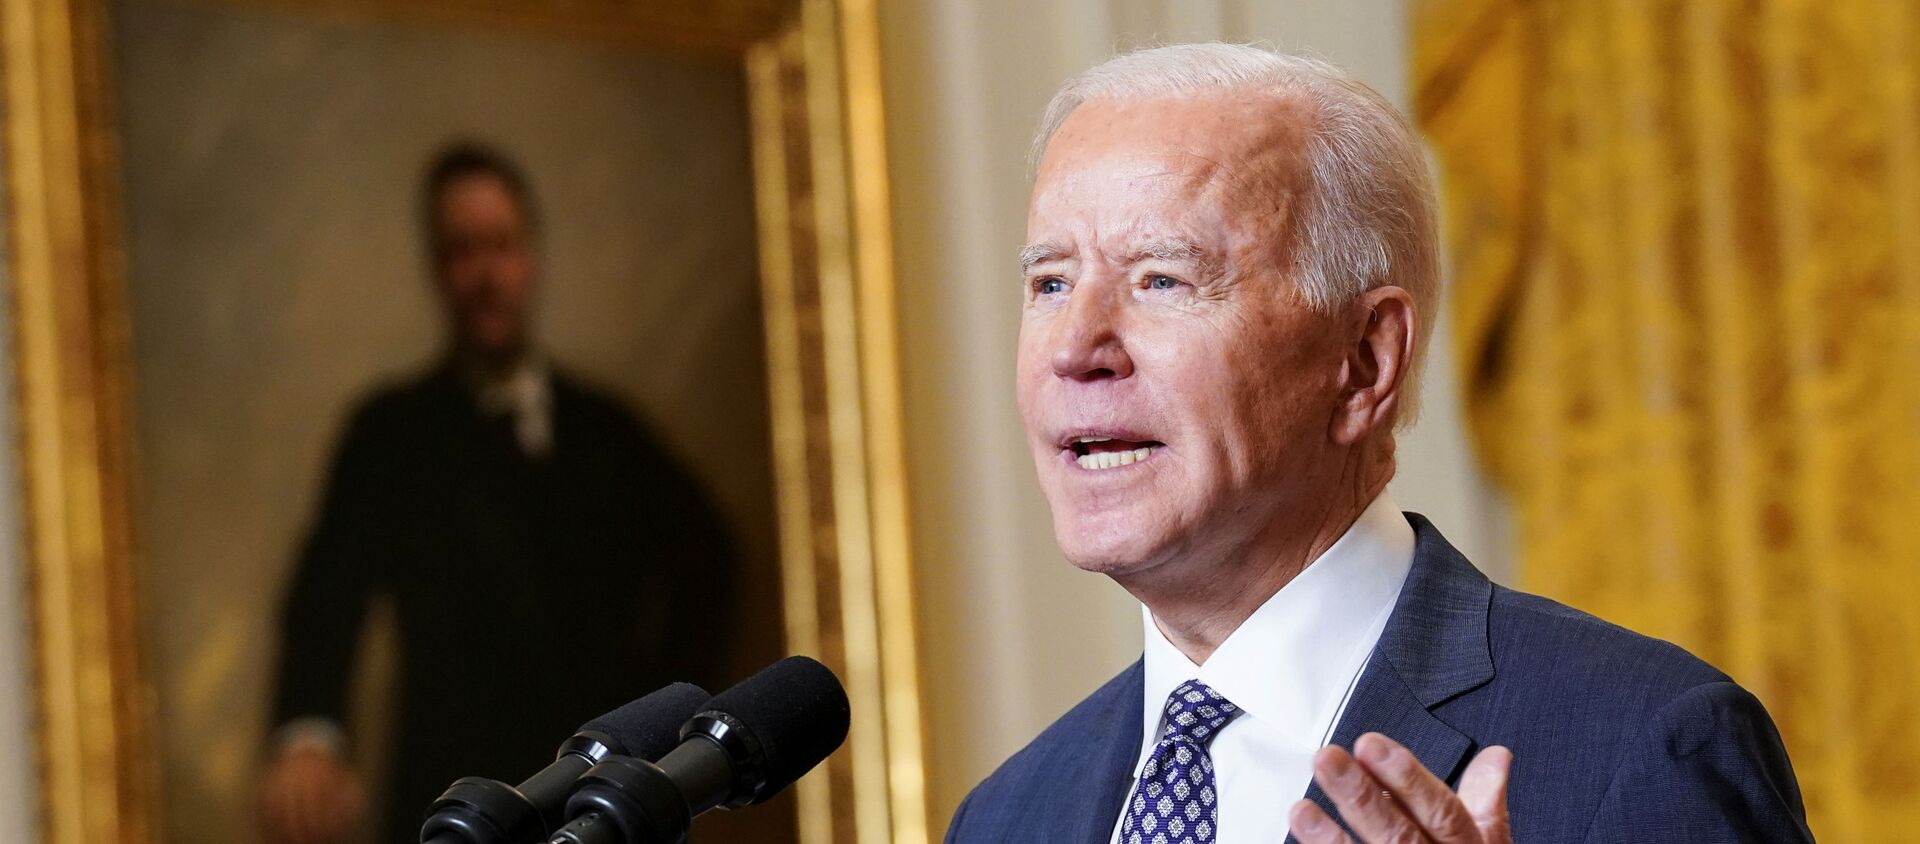 U.S. President Joe Biden delivers remarks as he takes part in a Munich Security Conference virtual event from the East Room at the White House in Washington, U.S., February 19, 2021. - Sputnik International, 1920, 19.02.2021